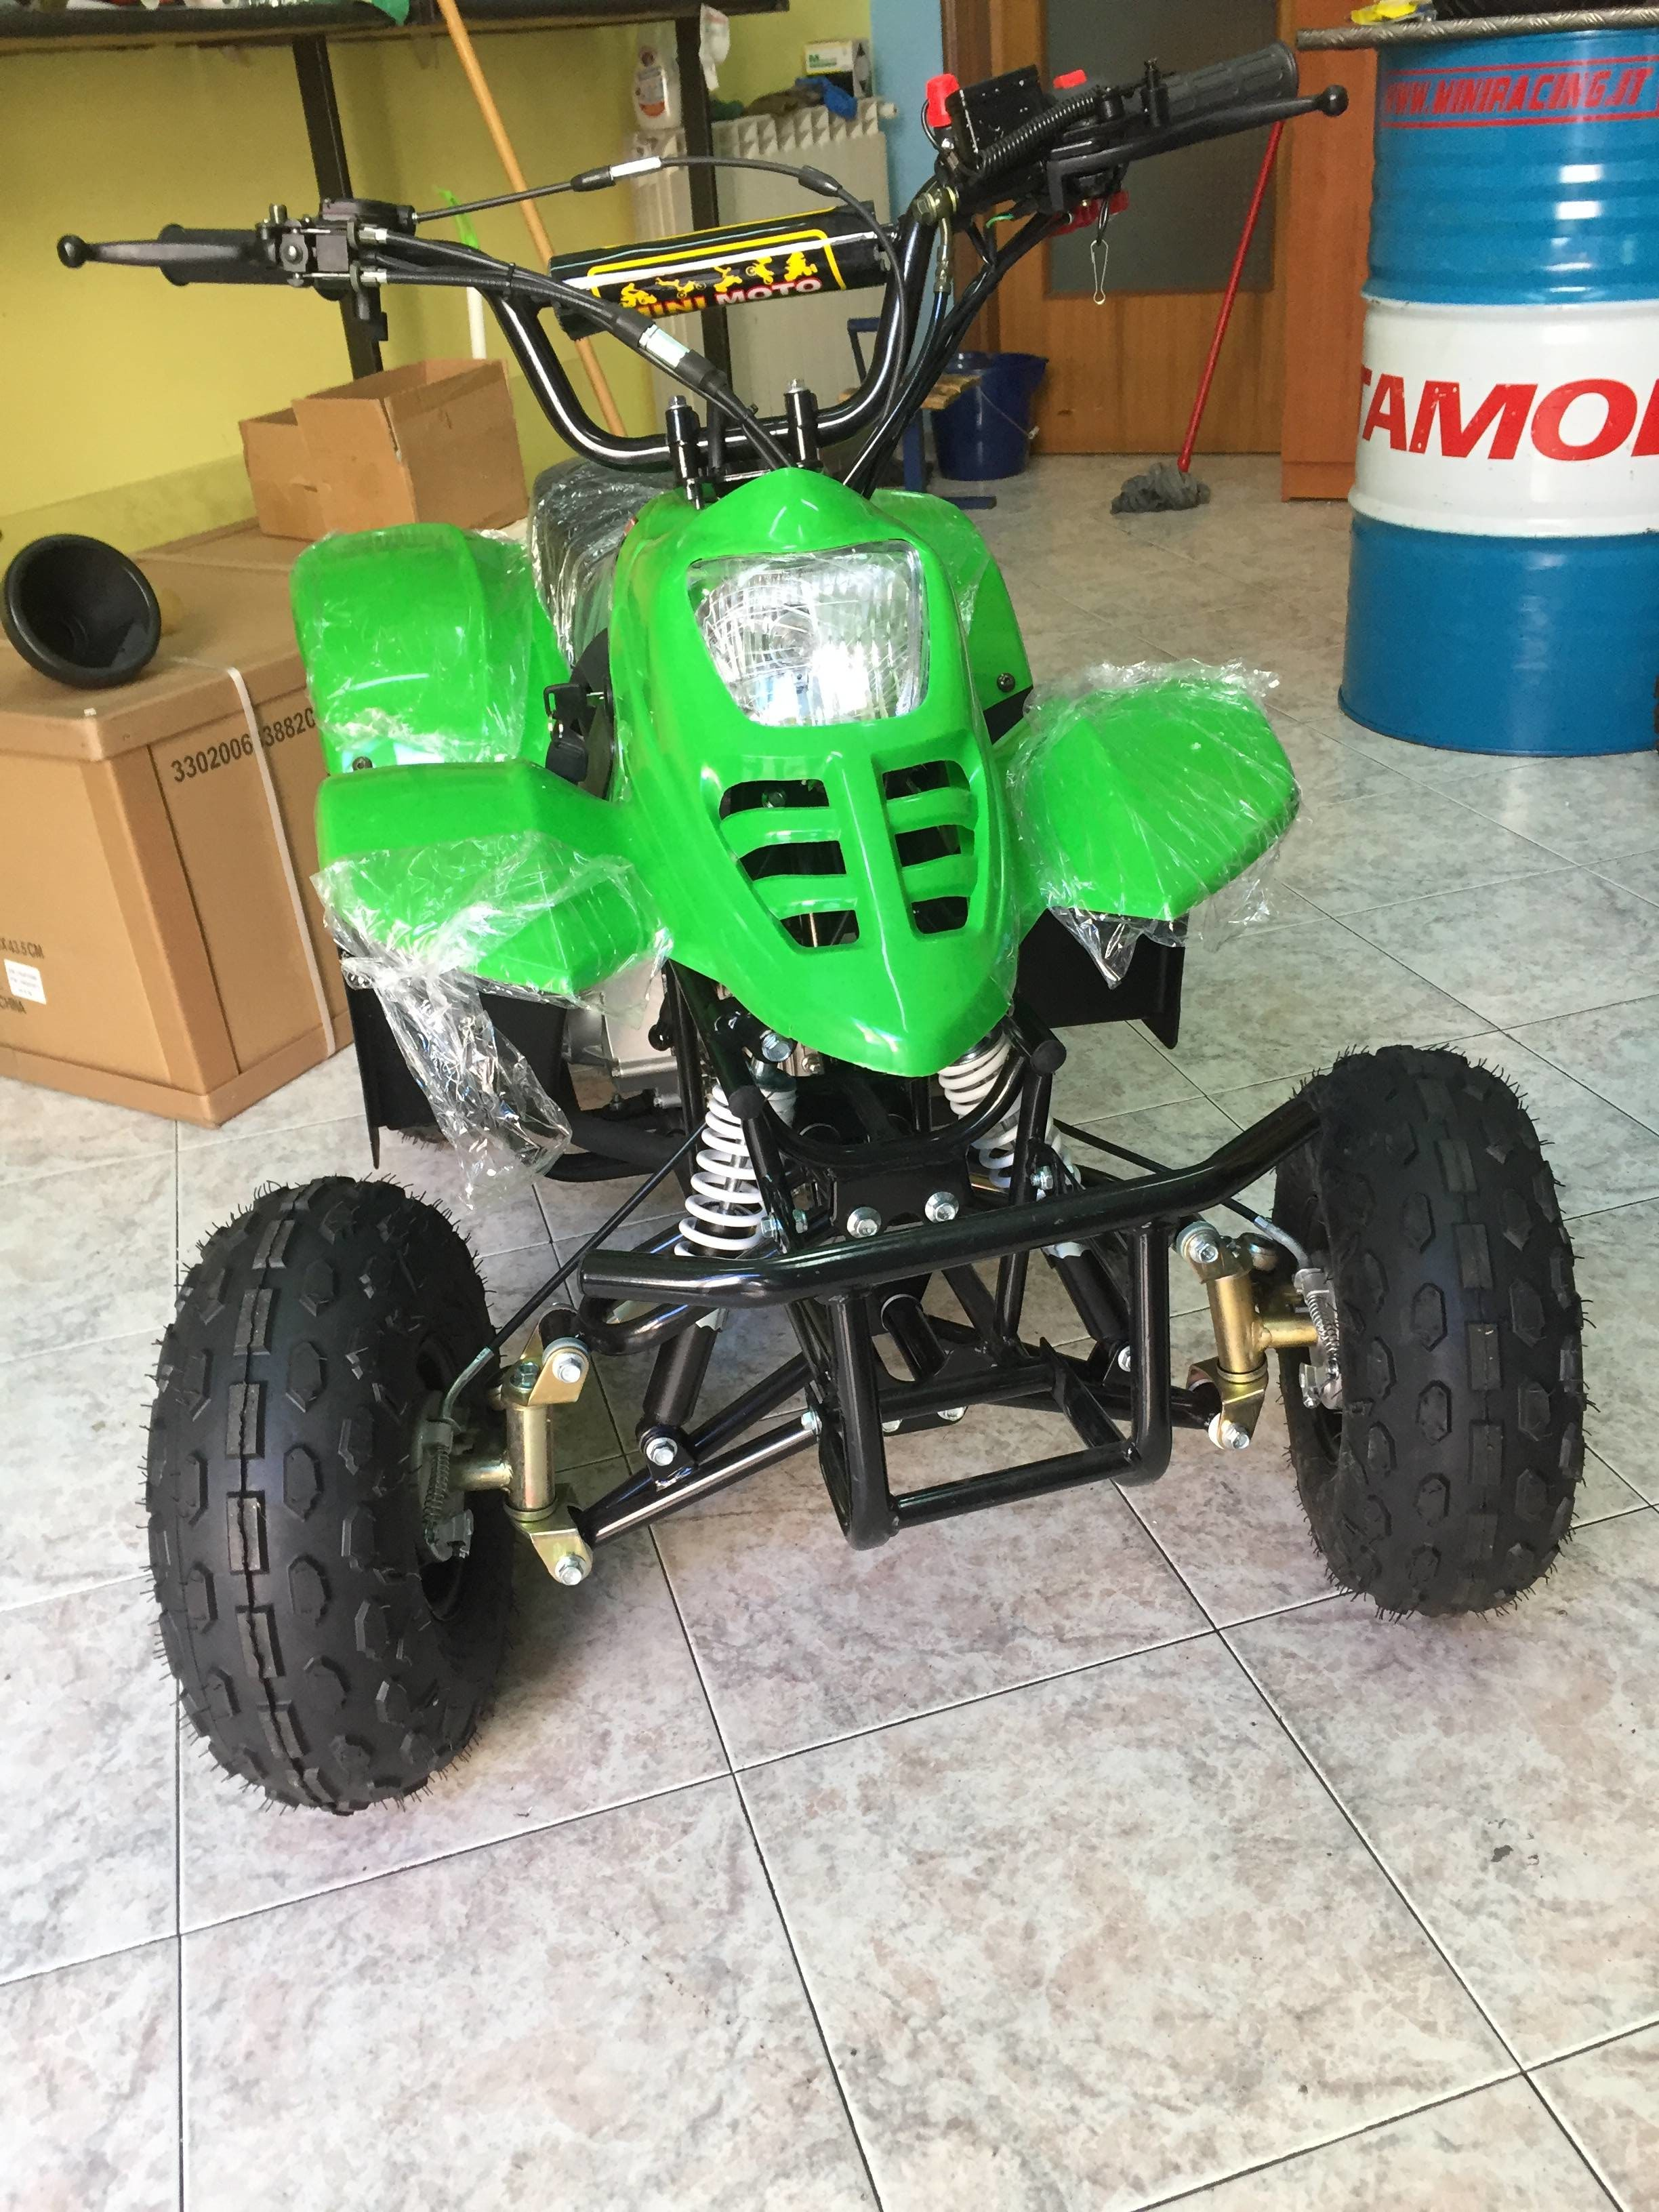 Hmparts Cerchi Lega Metà 4Zoll Typ34 Gas Scooter Mini Quad